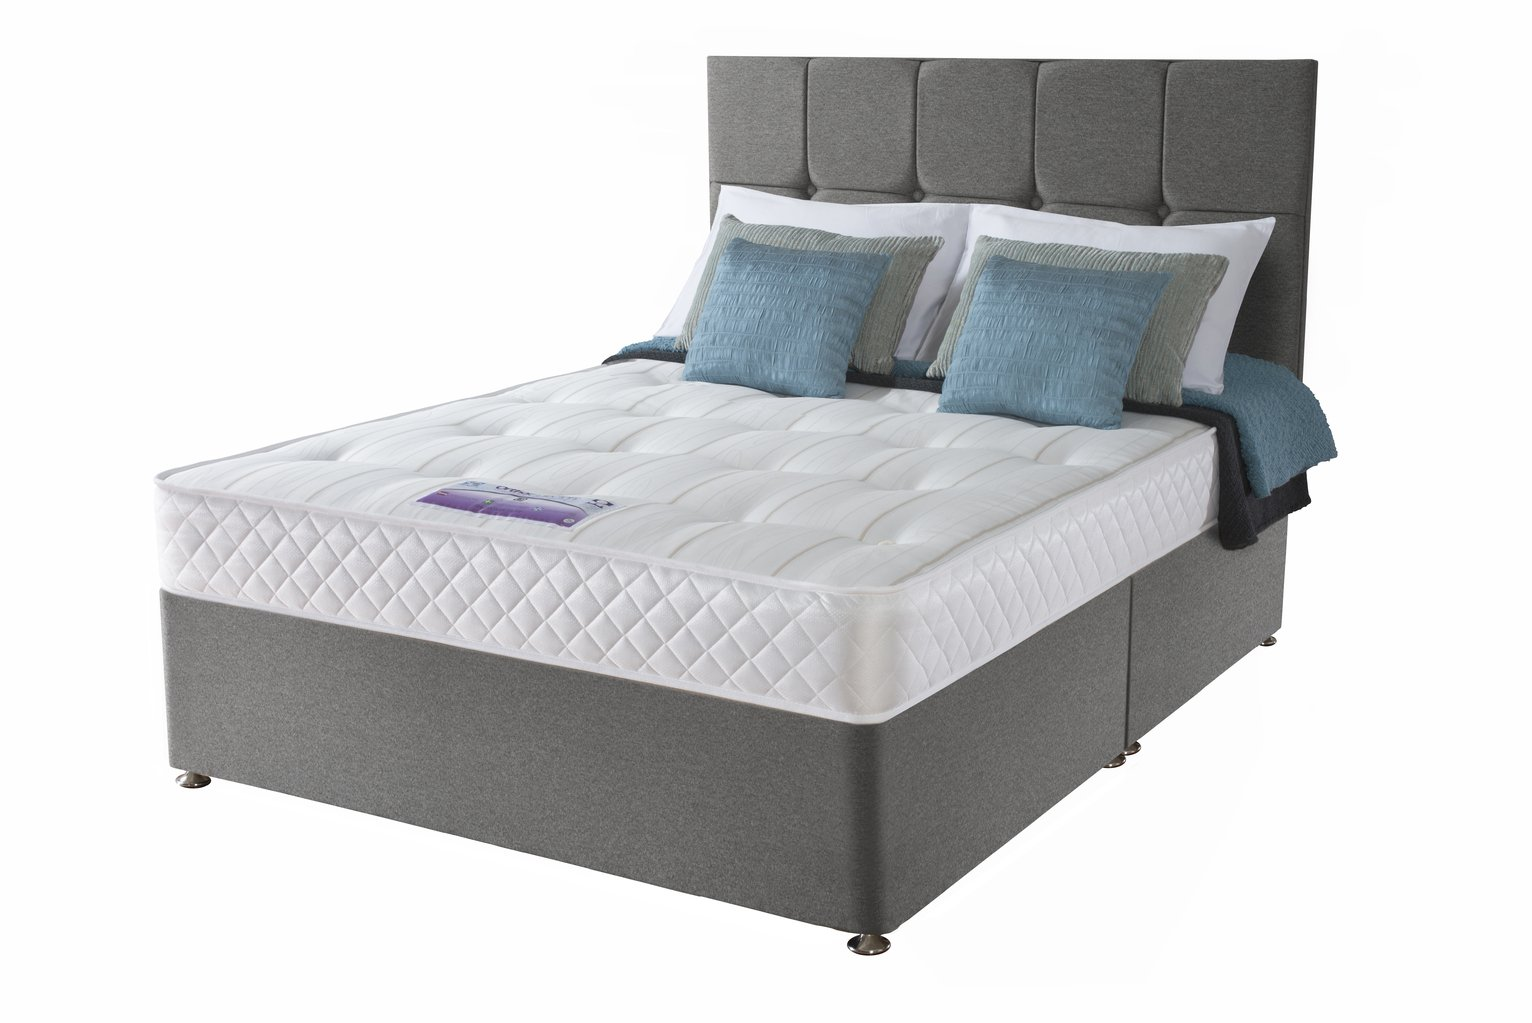 Sealy Posturepedic Firm Ortho Divan - Superking